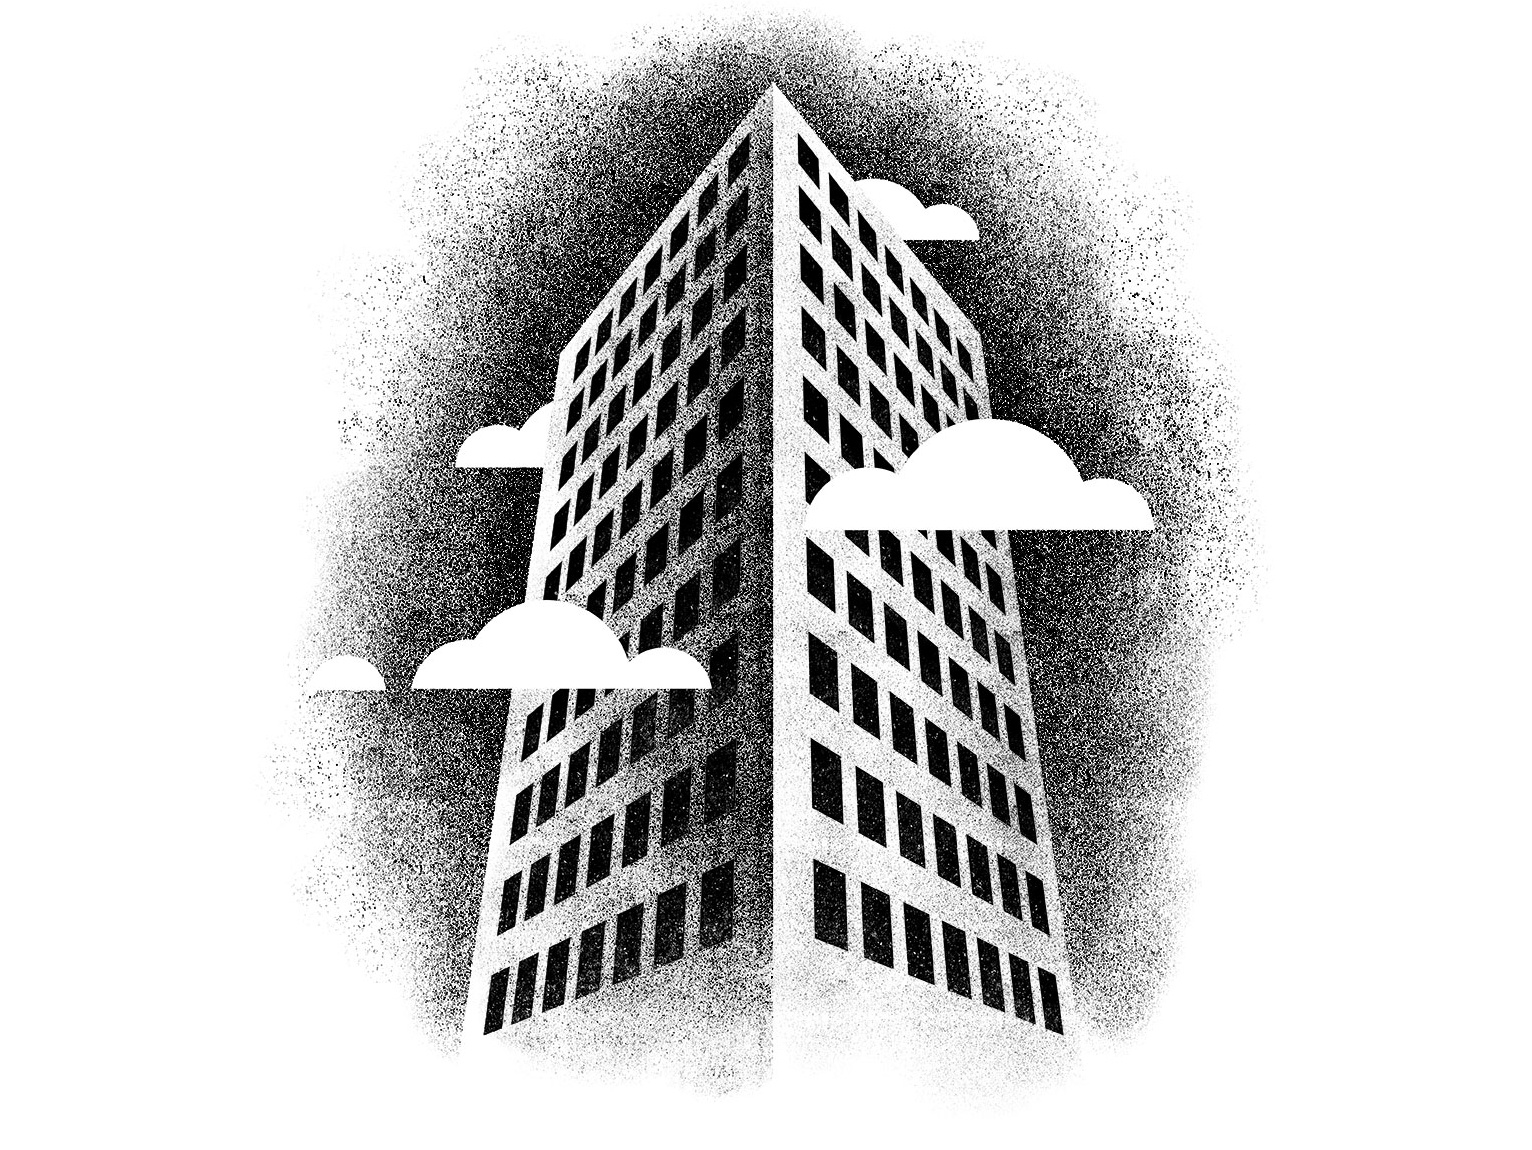 Building illustration design shading grain gritty tall sky city architecture clouds windows skyscraper building vector texture minimal